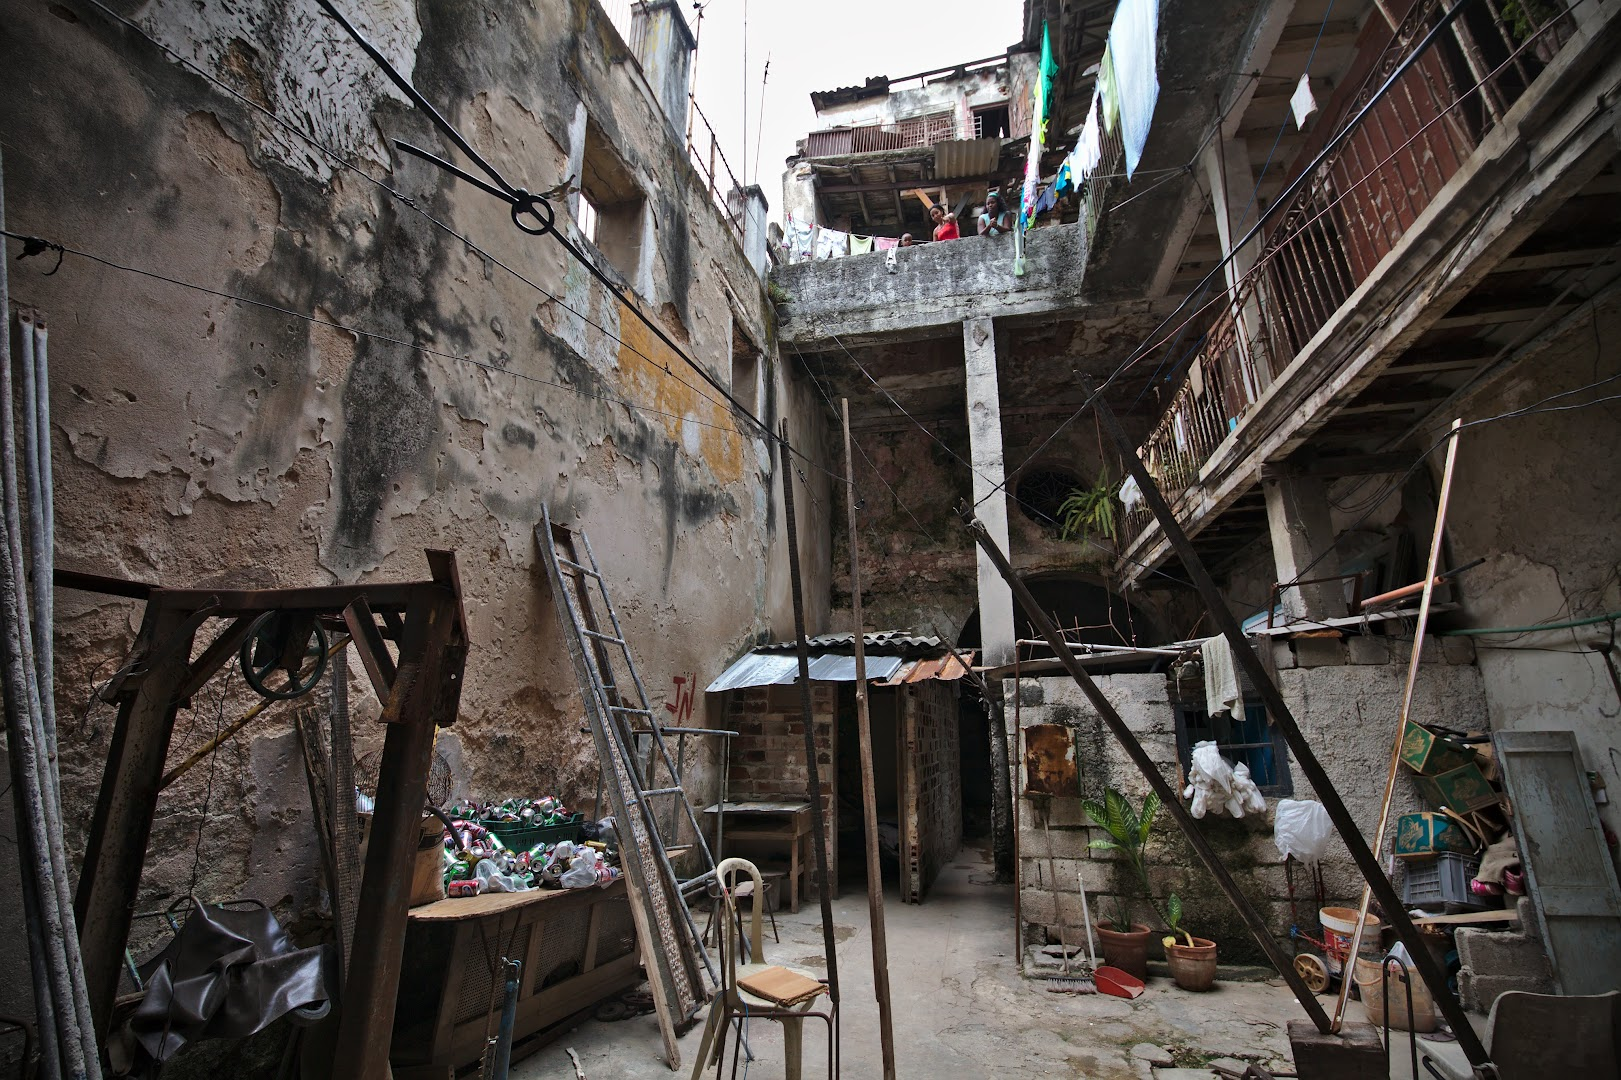 Most buildings in old city are in bad shape